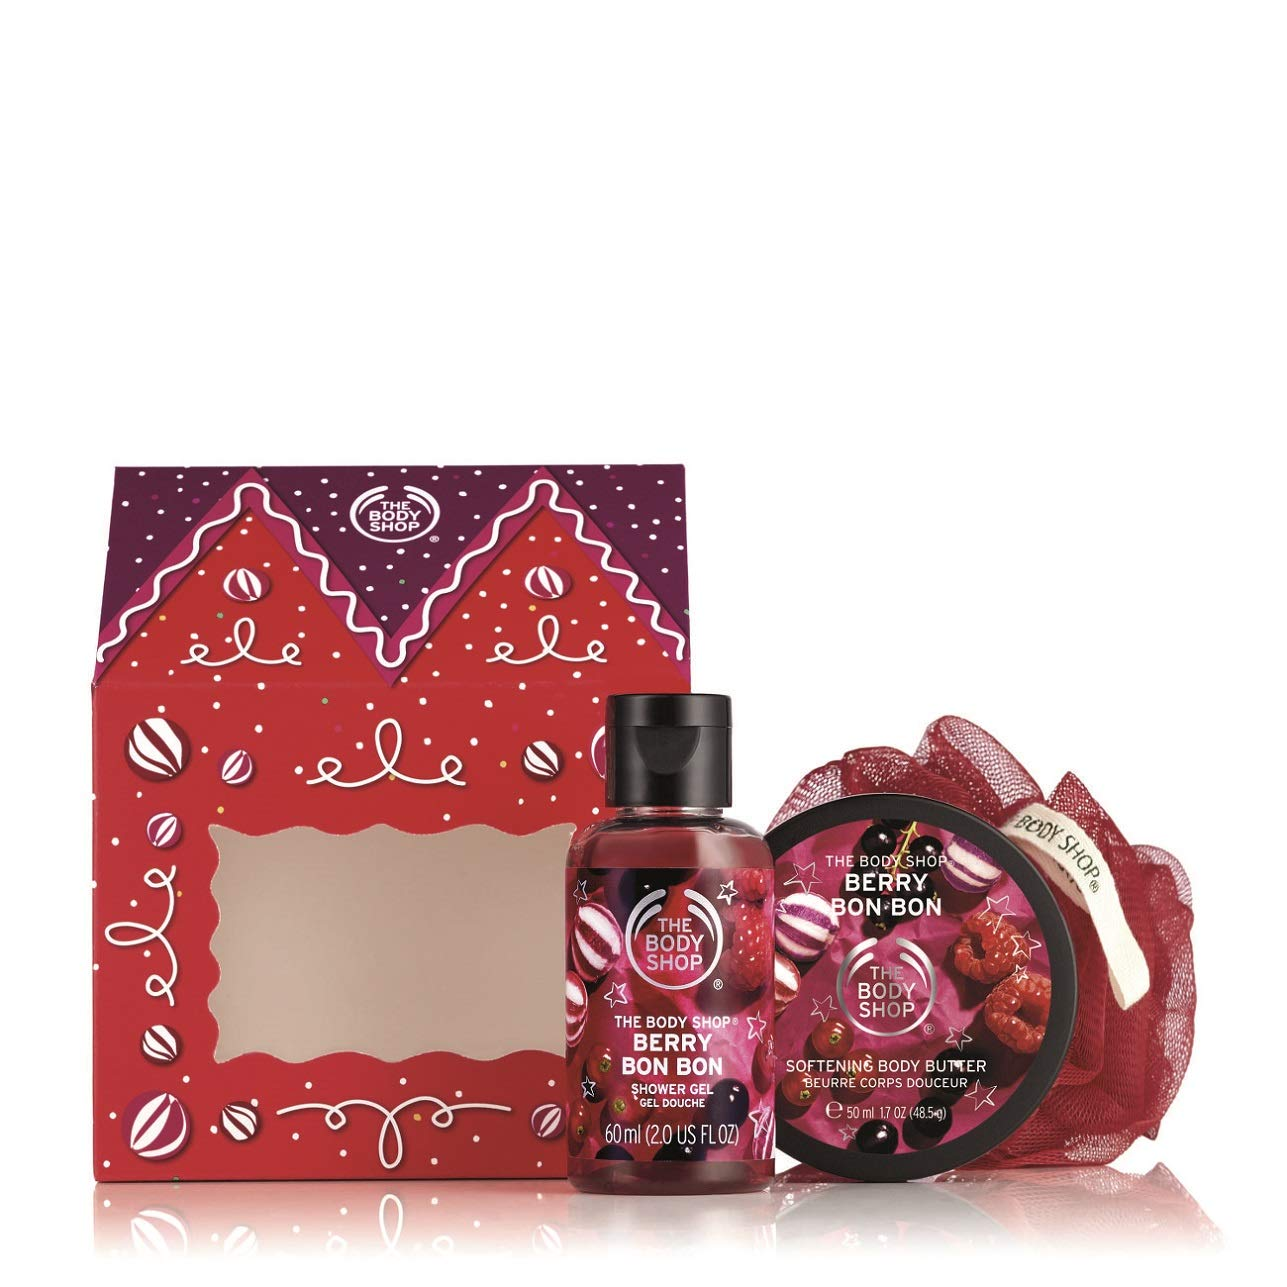 The Body Shop House of Berry Bon Bon Delights Gift Set